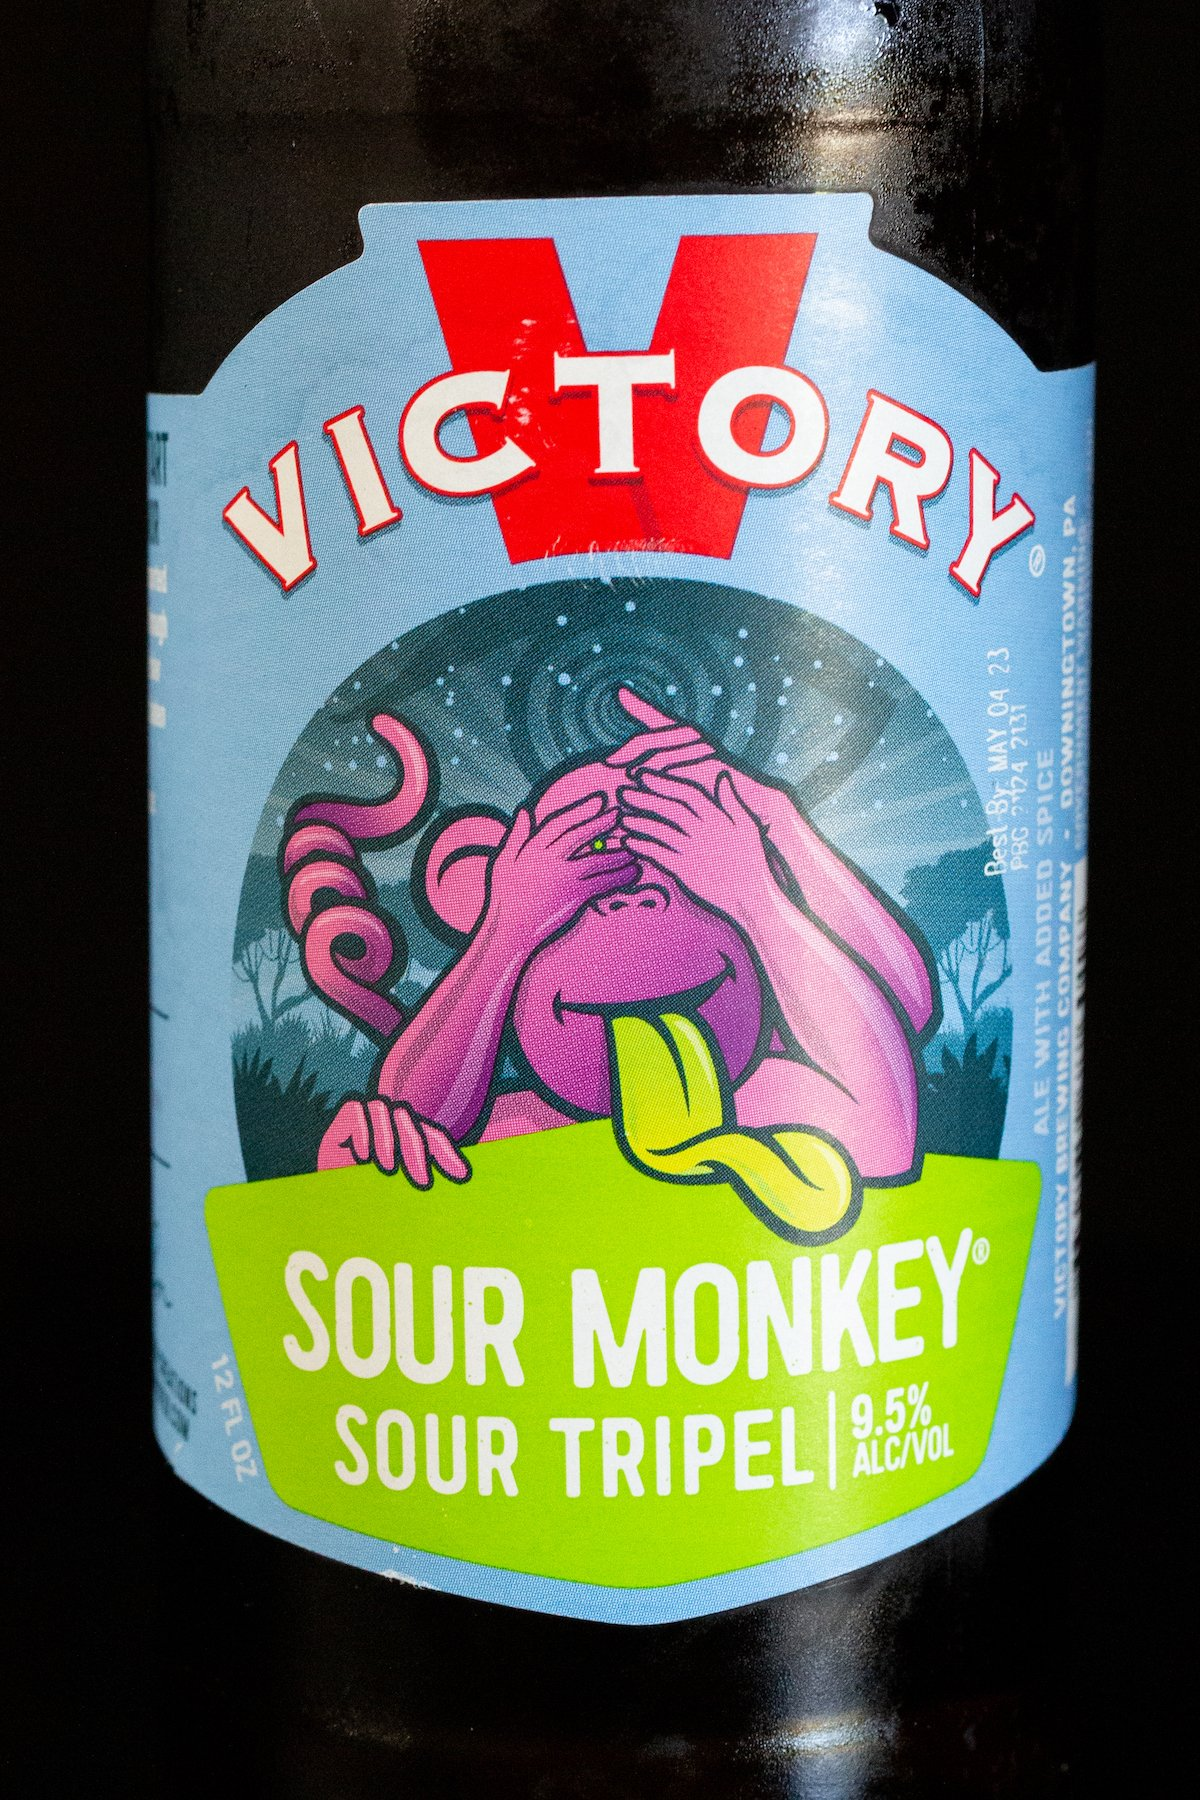 A bottle of Sour Monkey beer on a black background